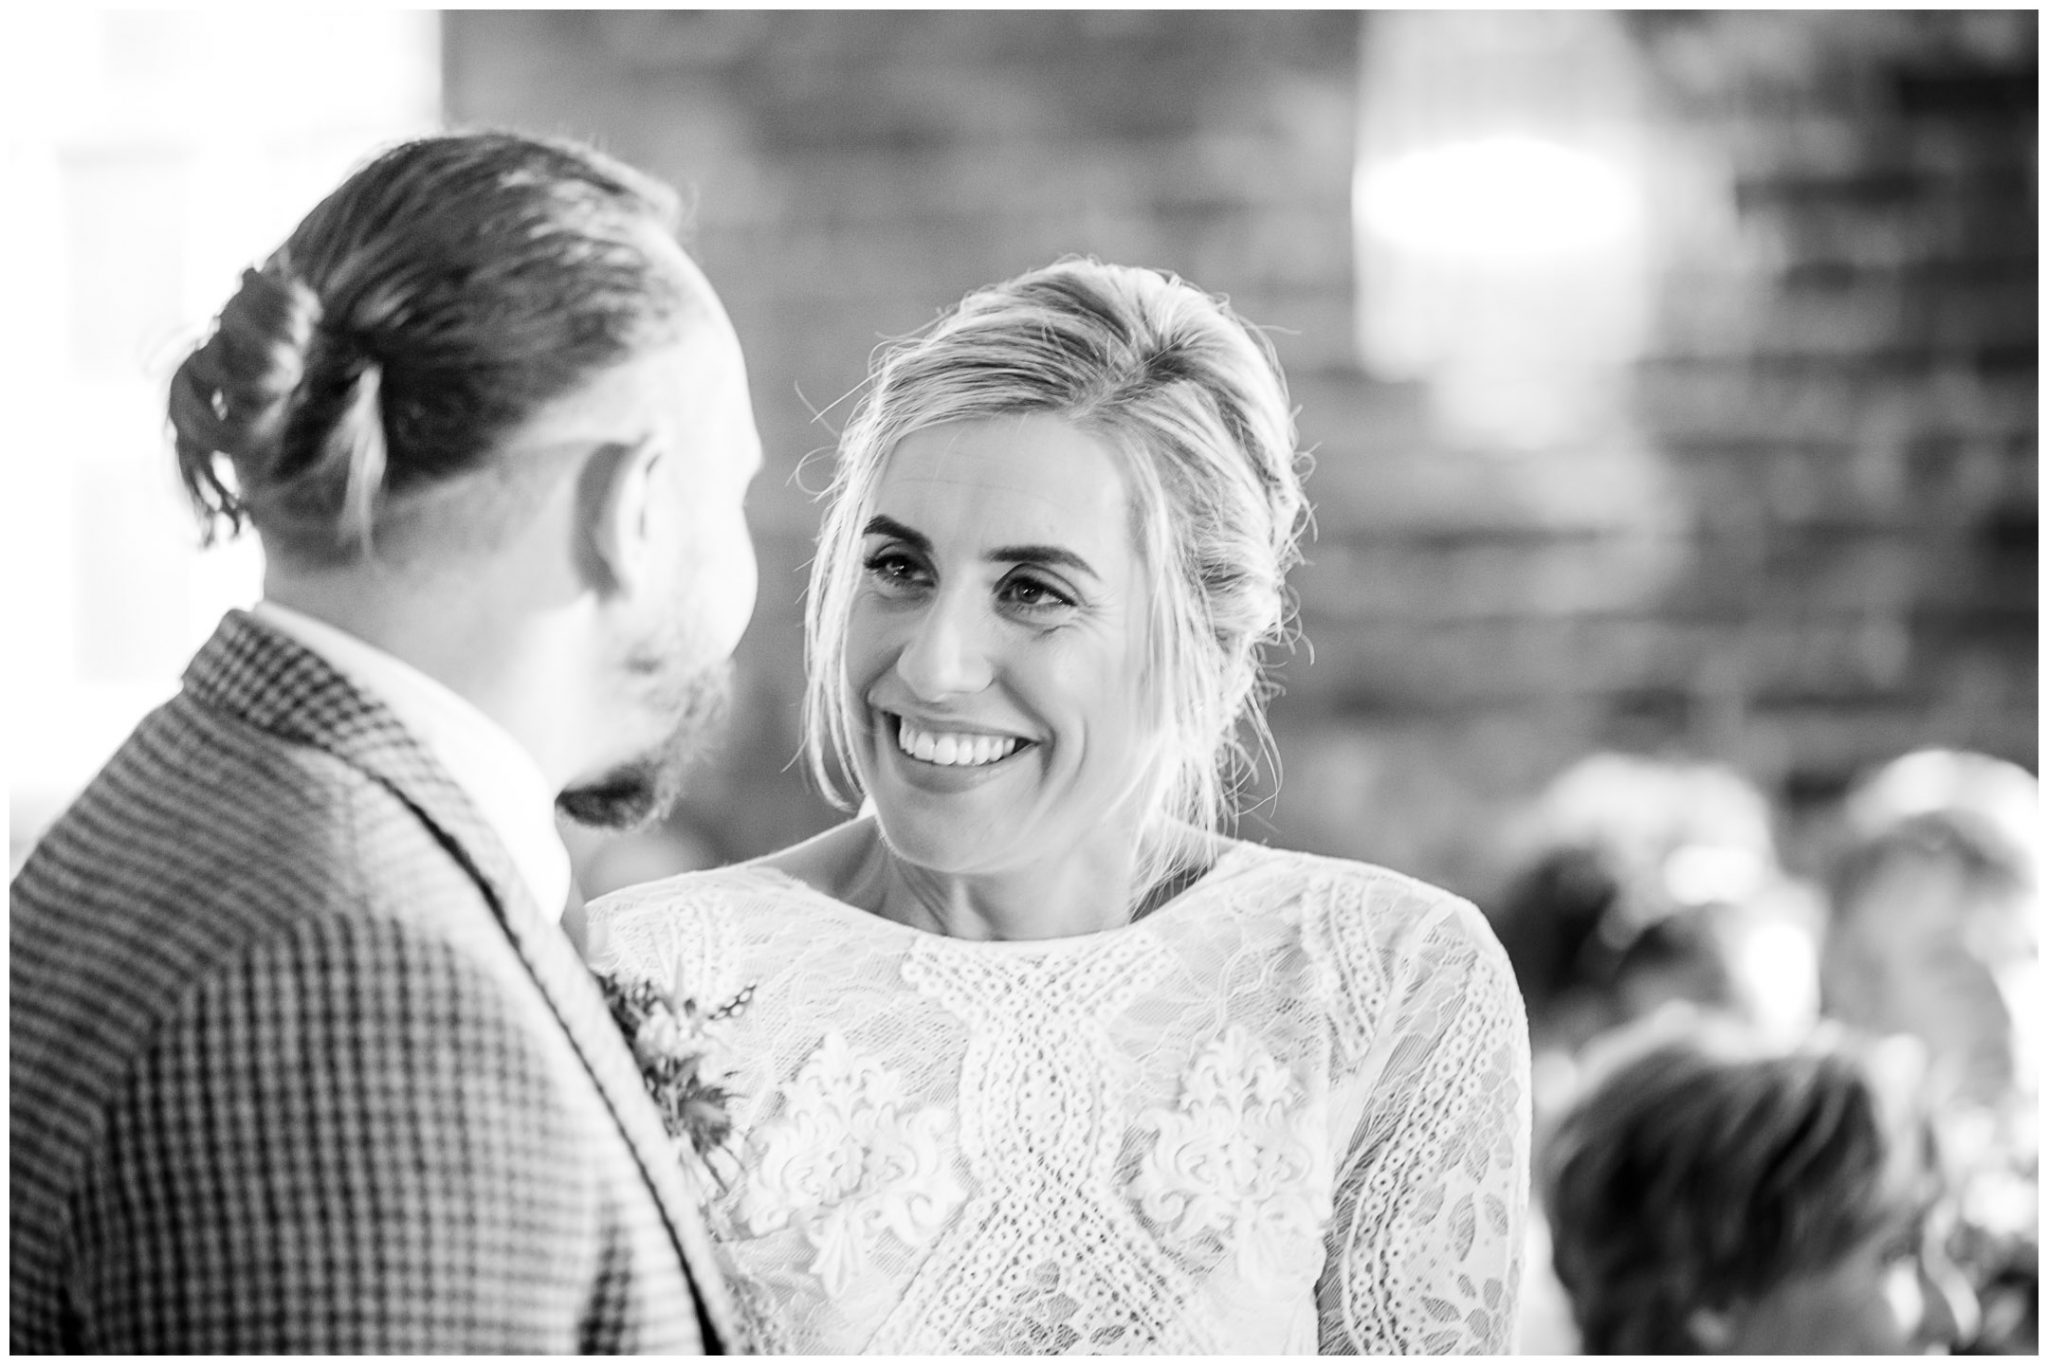 Bride and groom look happily into each others' eyes at the start of the marriage ceremony